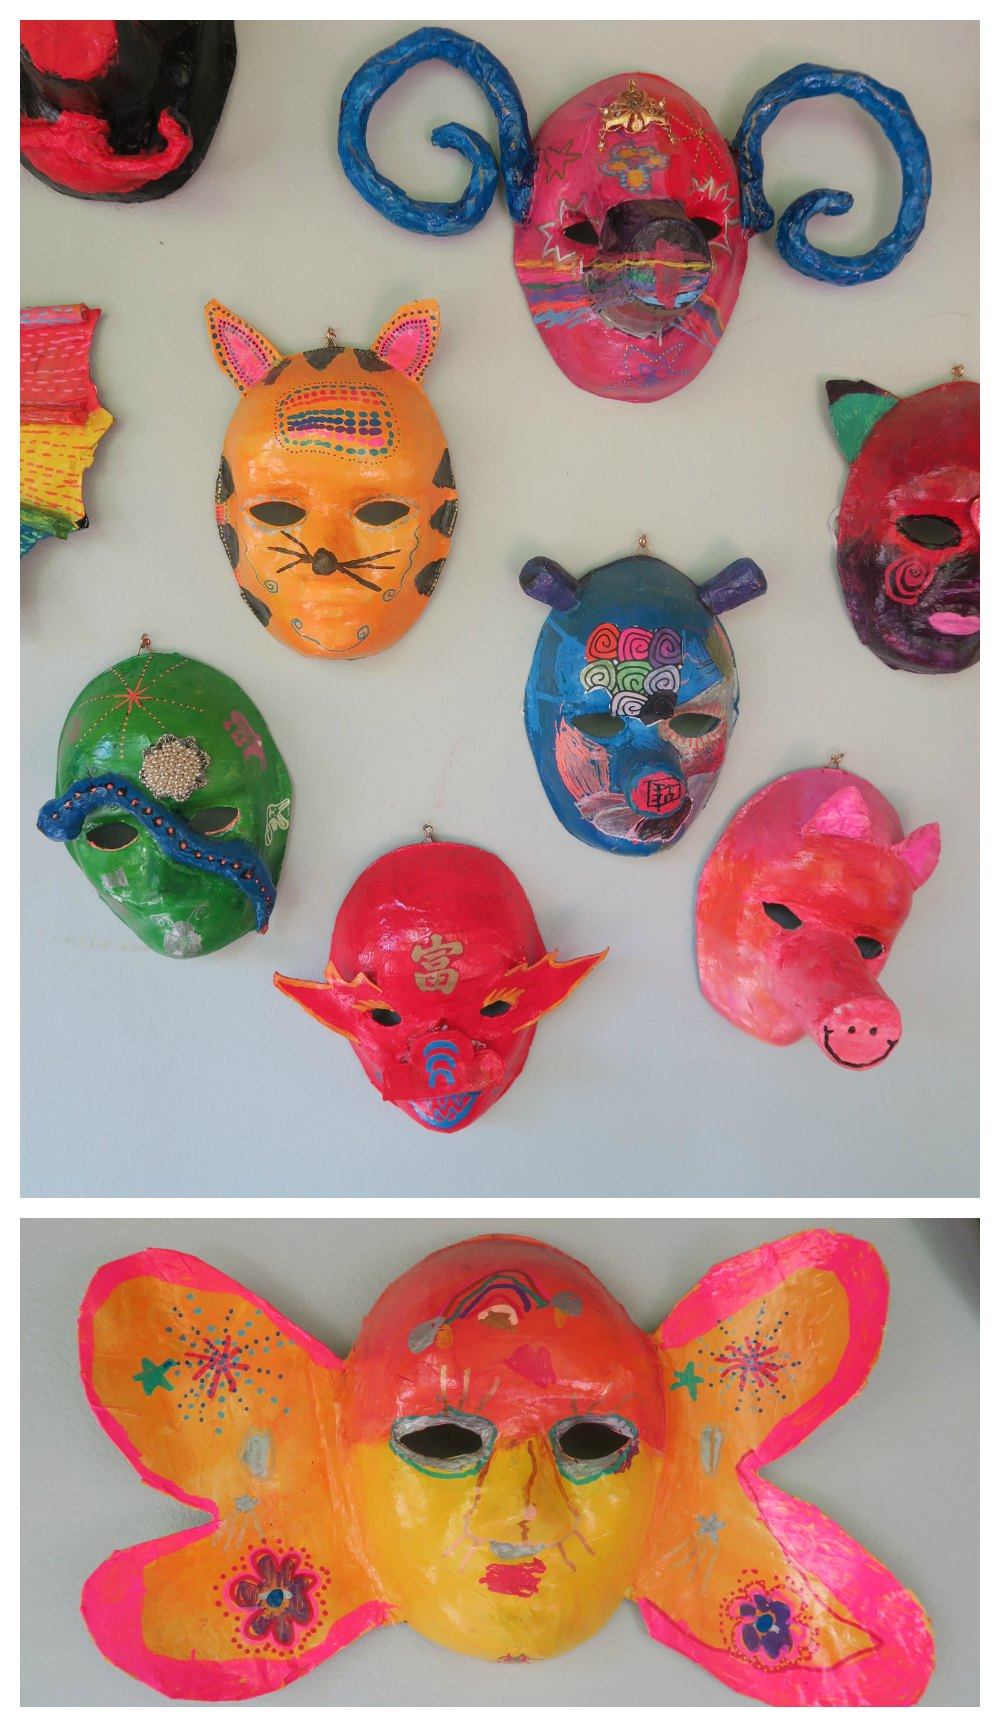 colorfoul masks made by children for chinese new year |curlytraveller.com